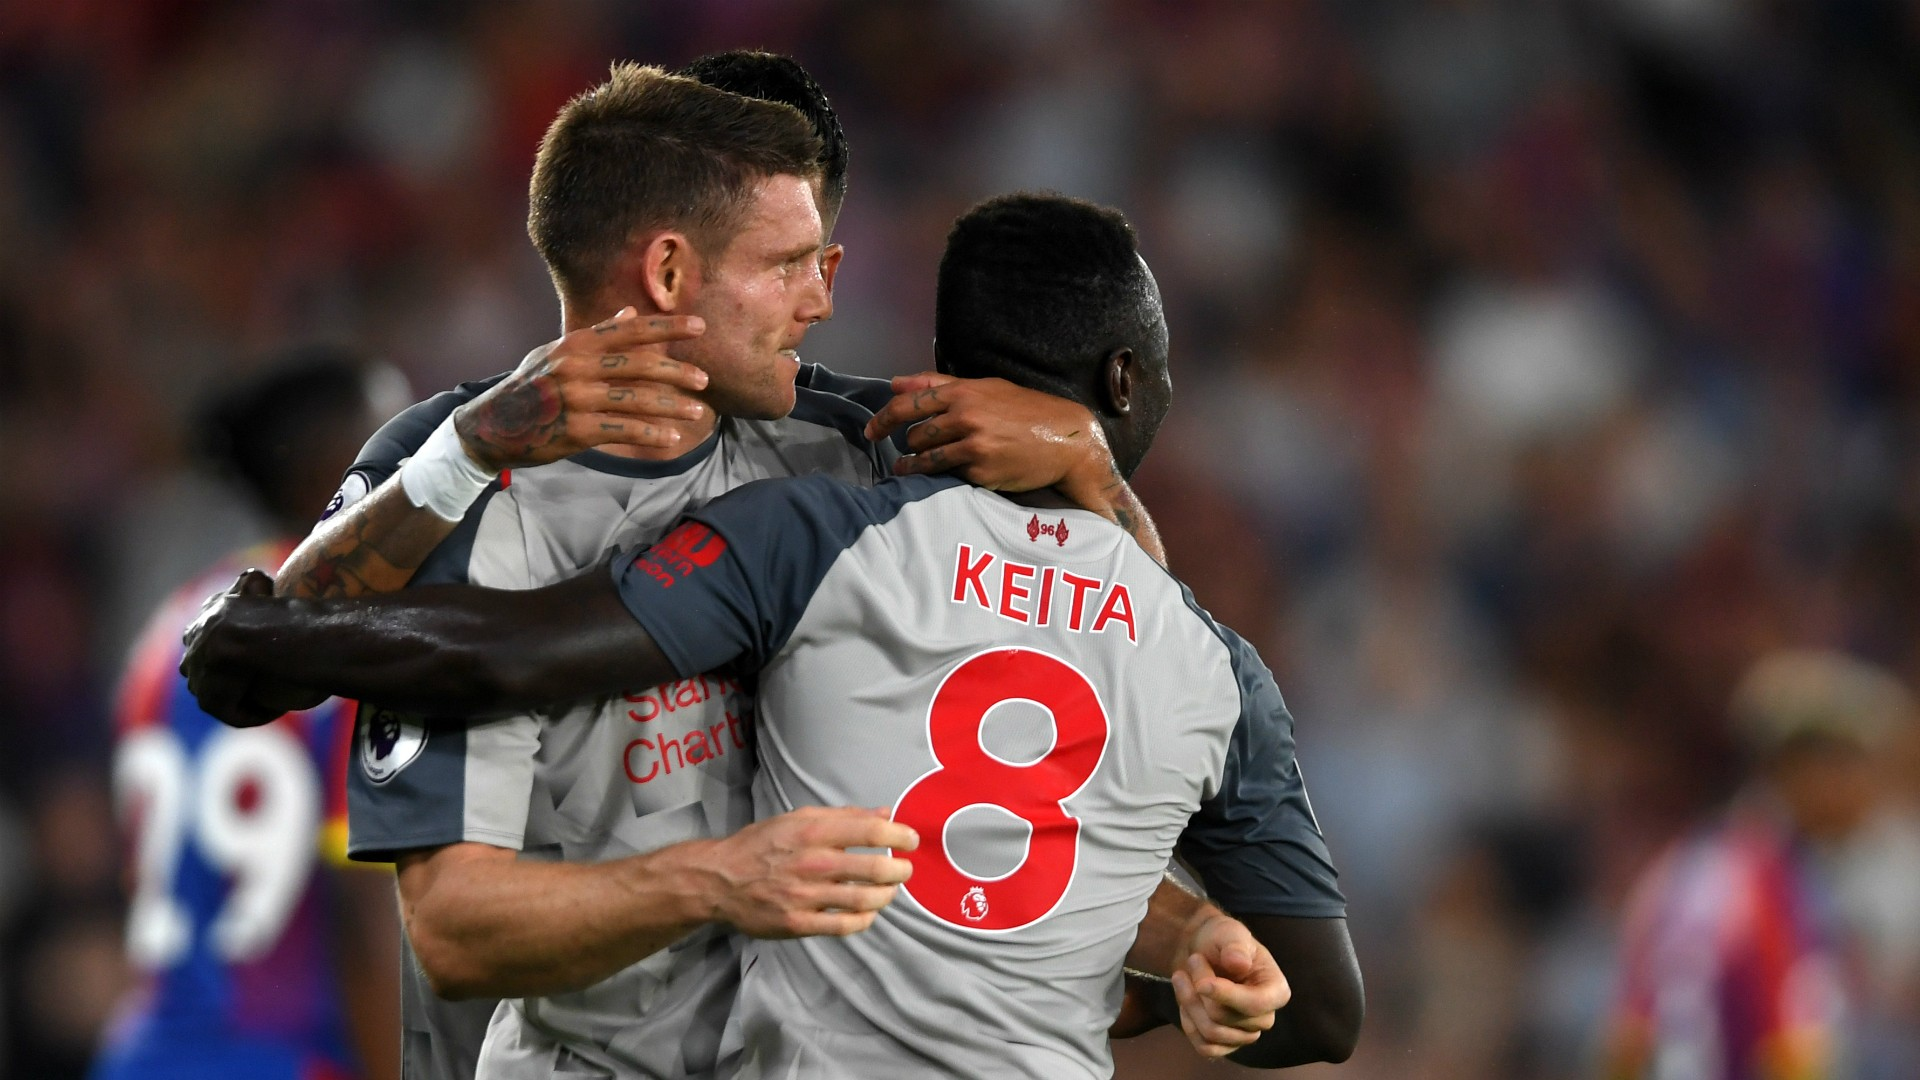 BPL (2018-2019) Report: Crystal Palace 0 Liverpool 2 - Milner and Mane secure victory at Selhurst Park